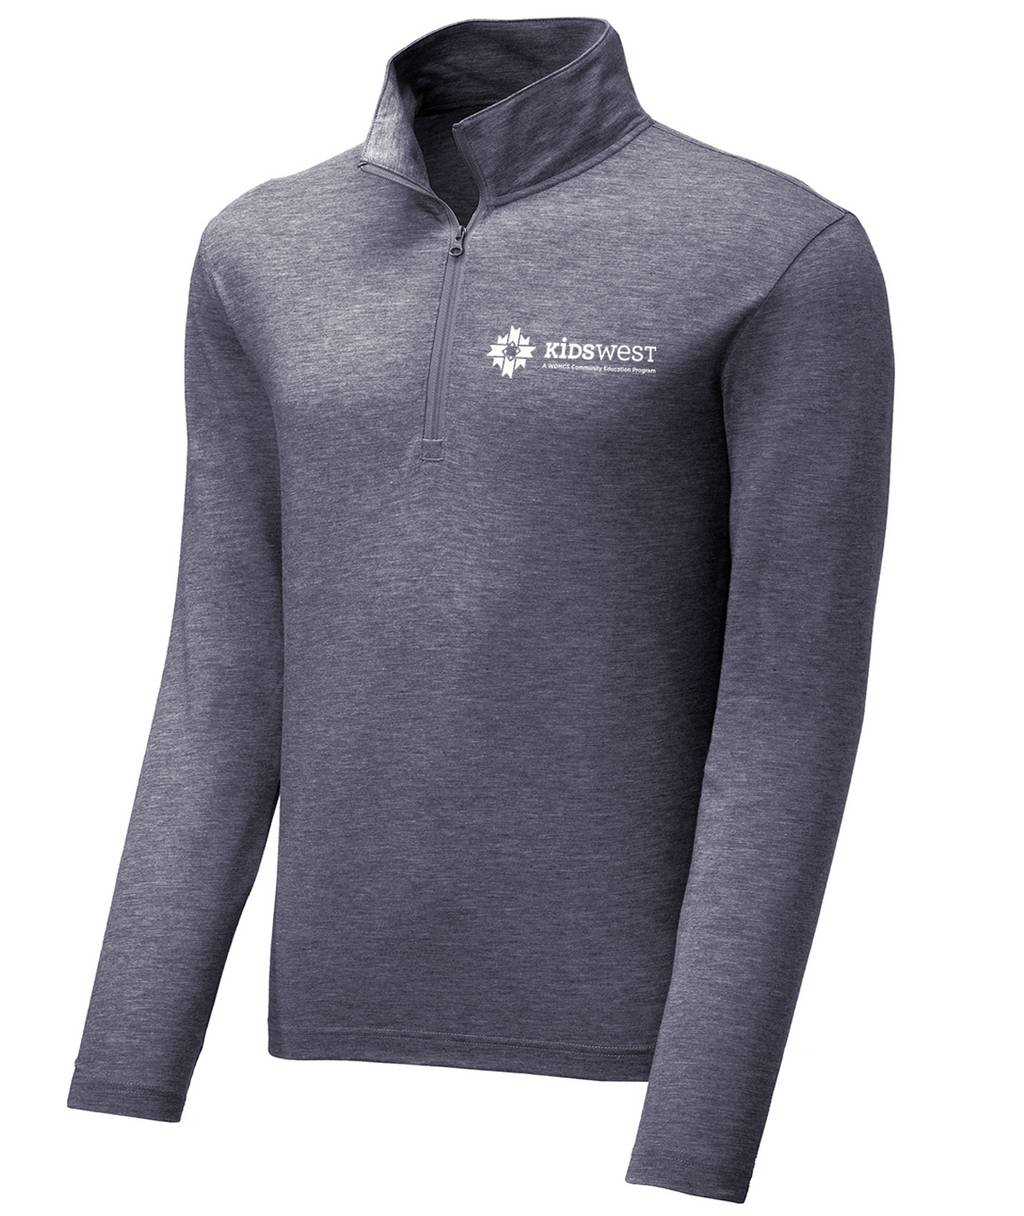 KidsWest Adult 1/4 Zip Pullover